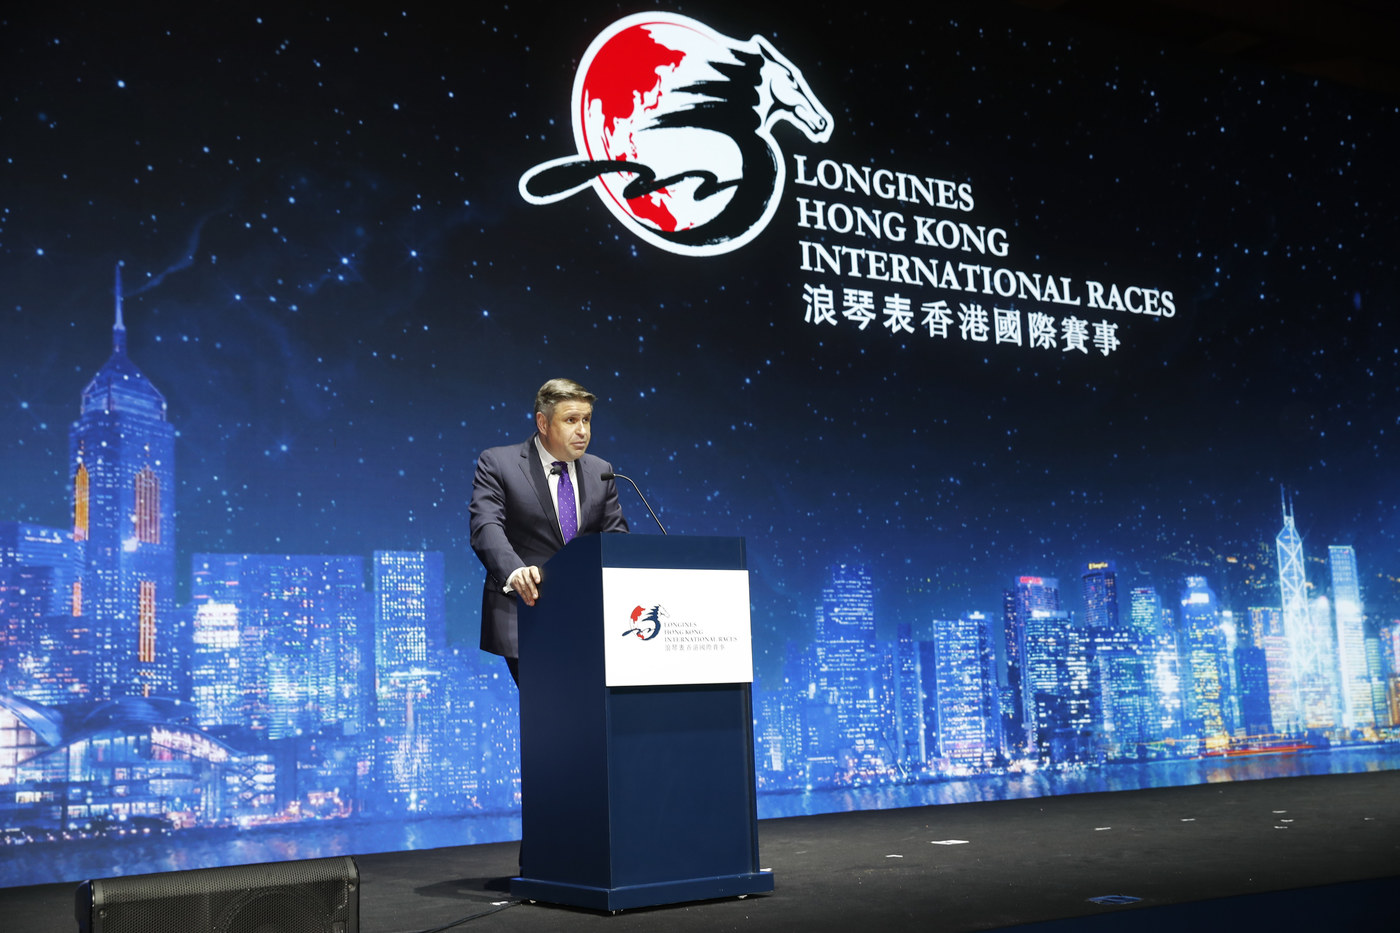 Longines Flat Racing Event: Australian Hugh Bowman receives the 2017 Longines World's Best Jockey Award in Hong Kong 1